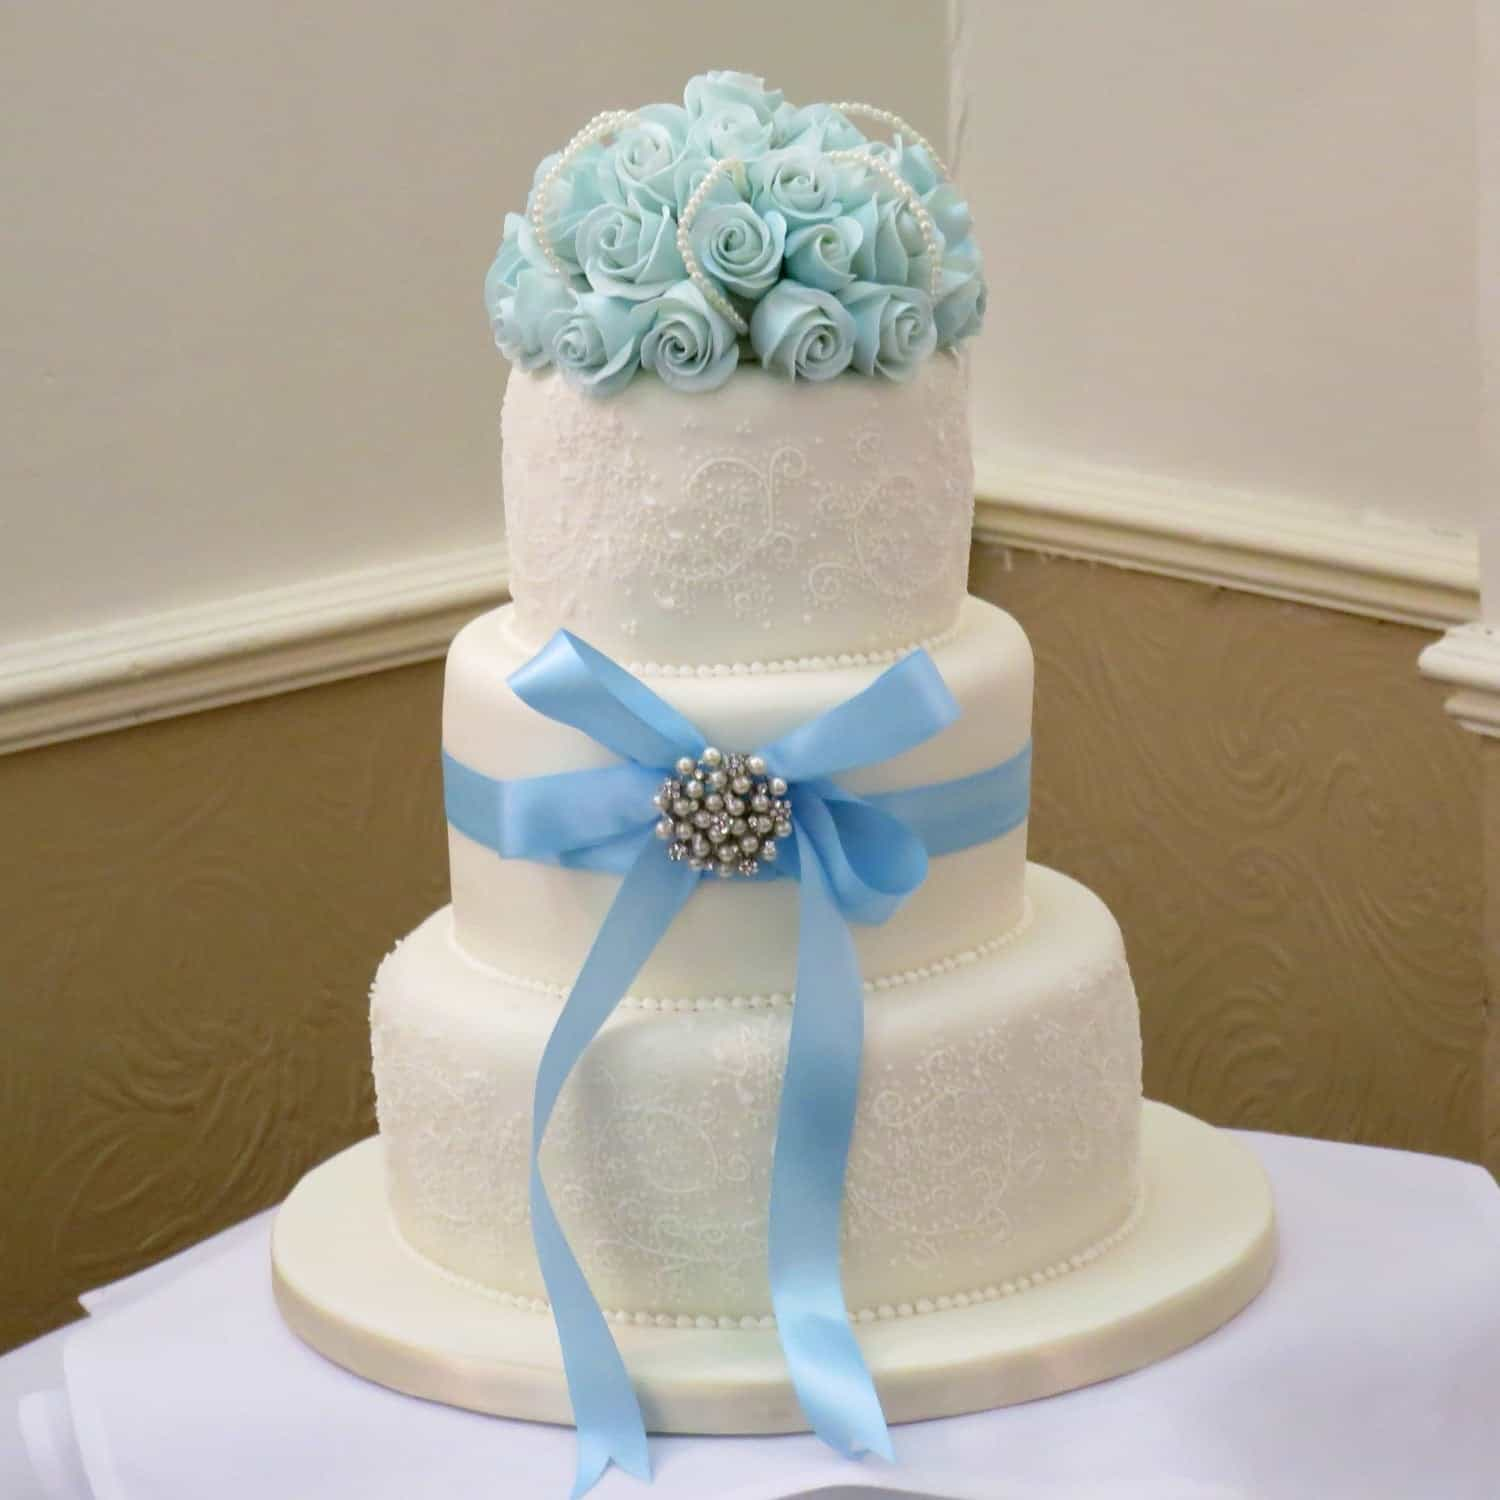 Classic Wedding Cake With Pretty Blue Shaded Roses With Icing Embroidery (Image 10 of 16)